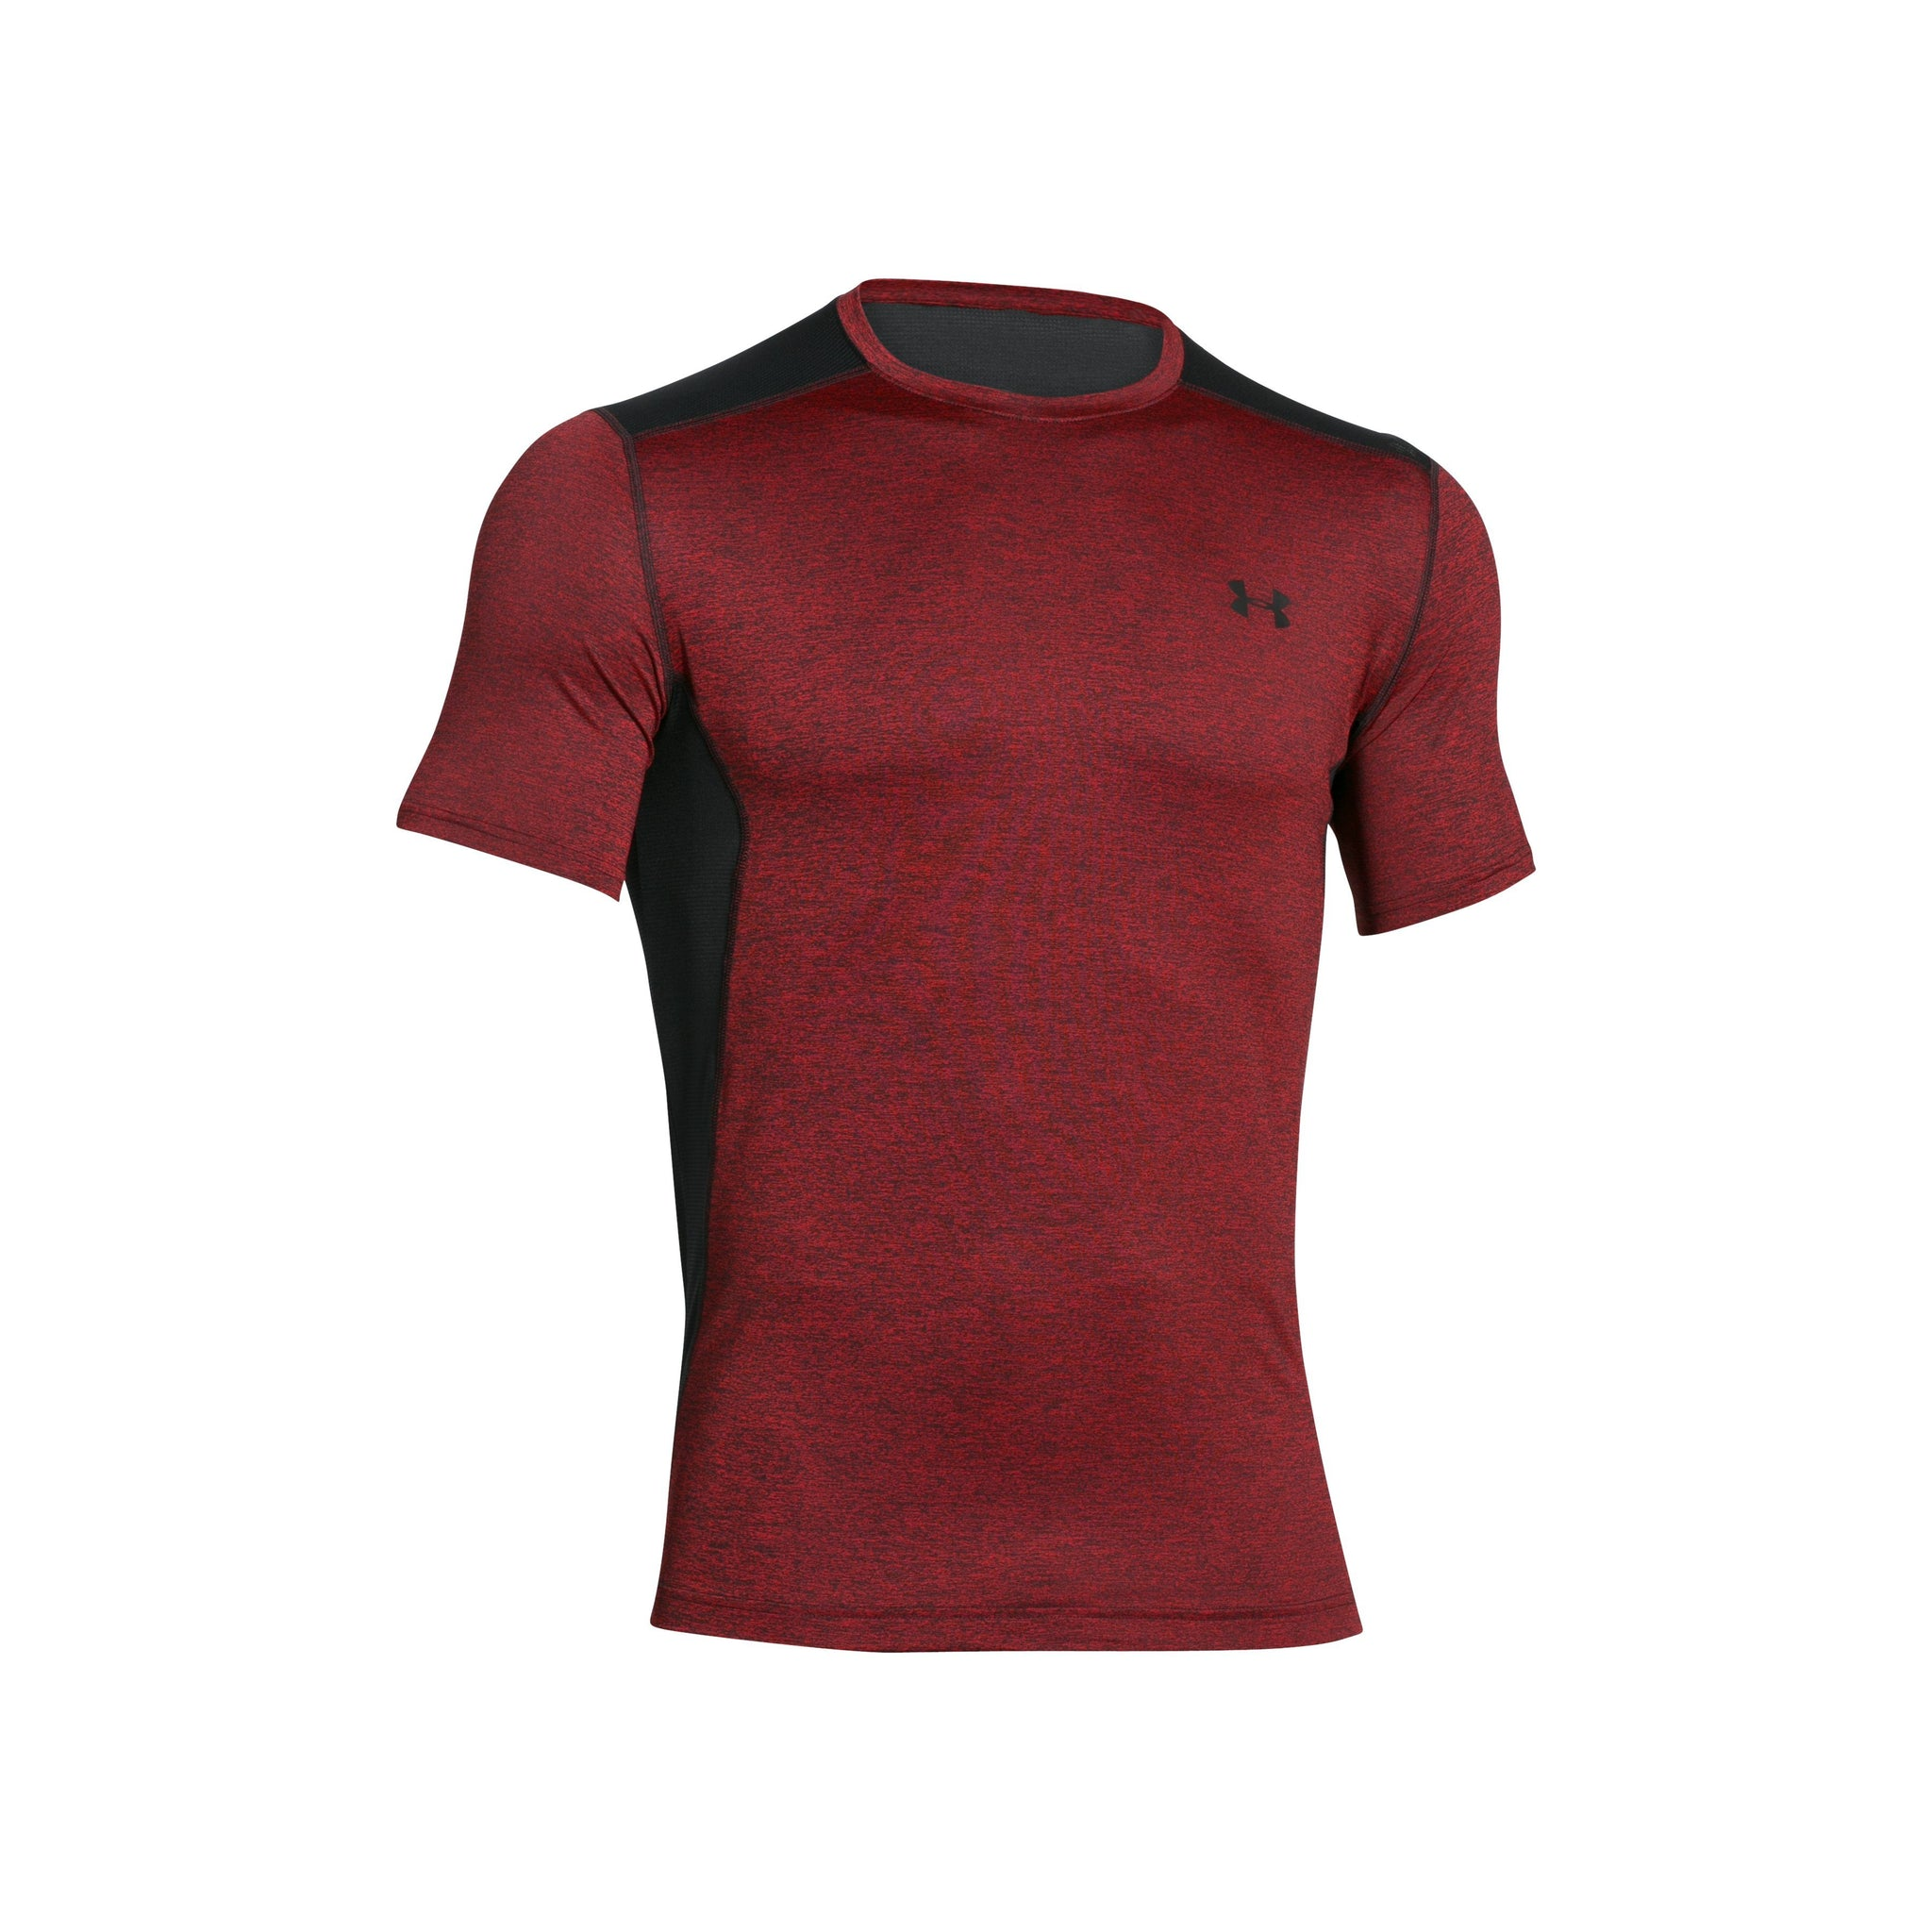 Under Armour Raid T-shirt - Red